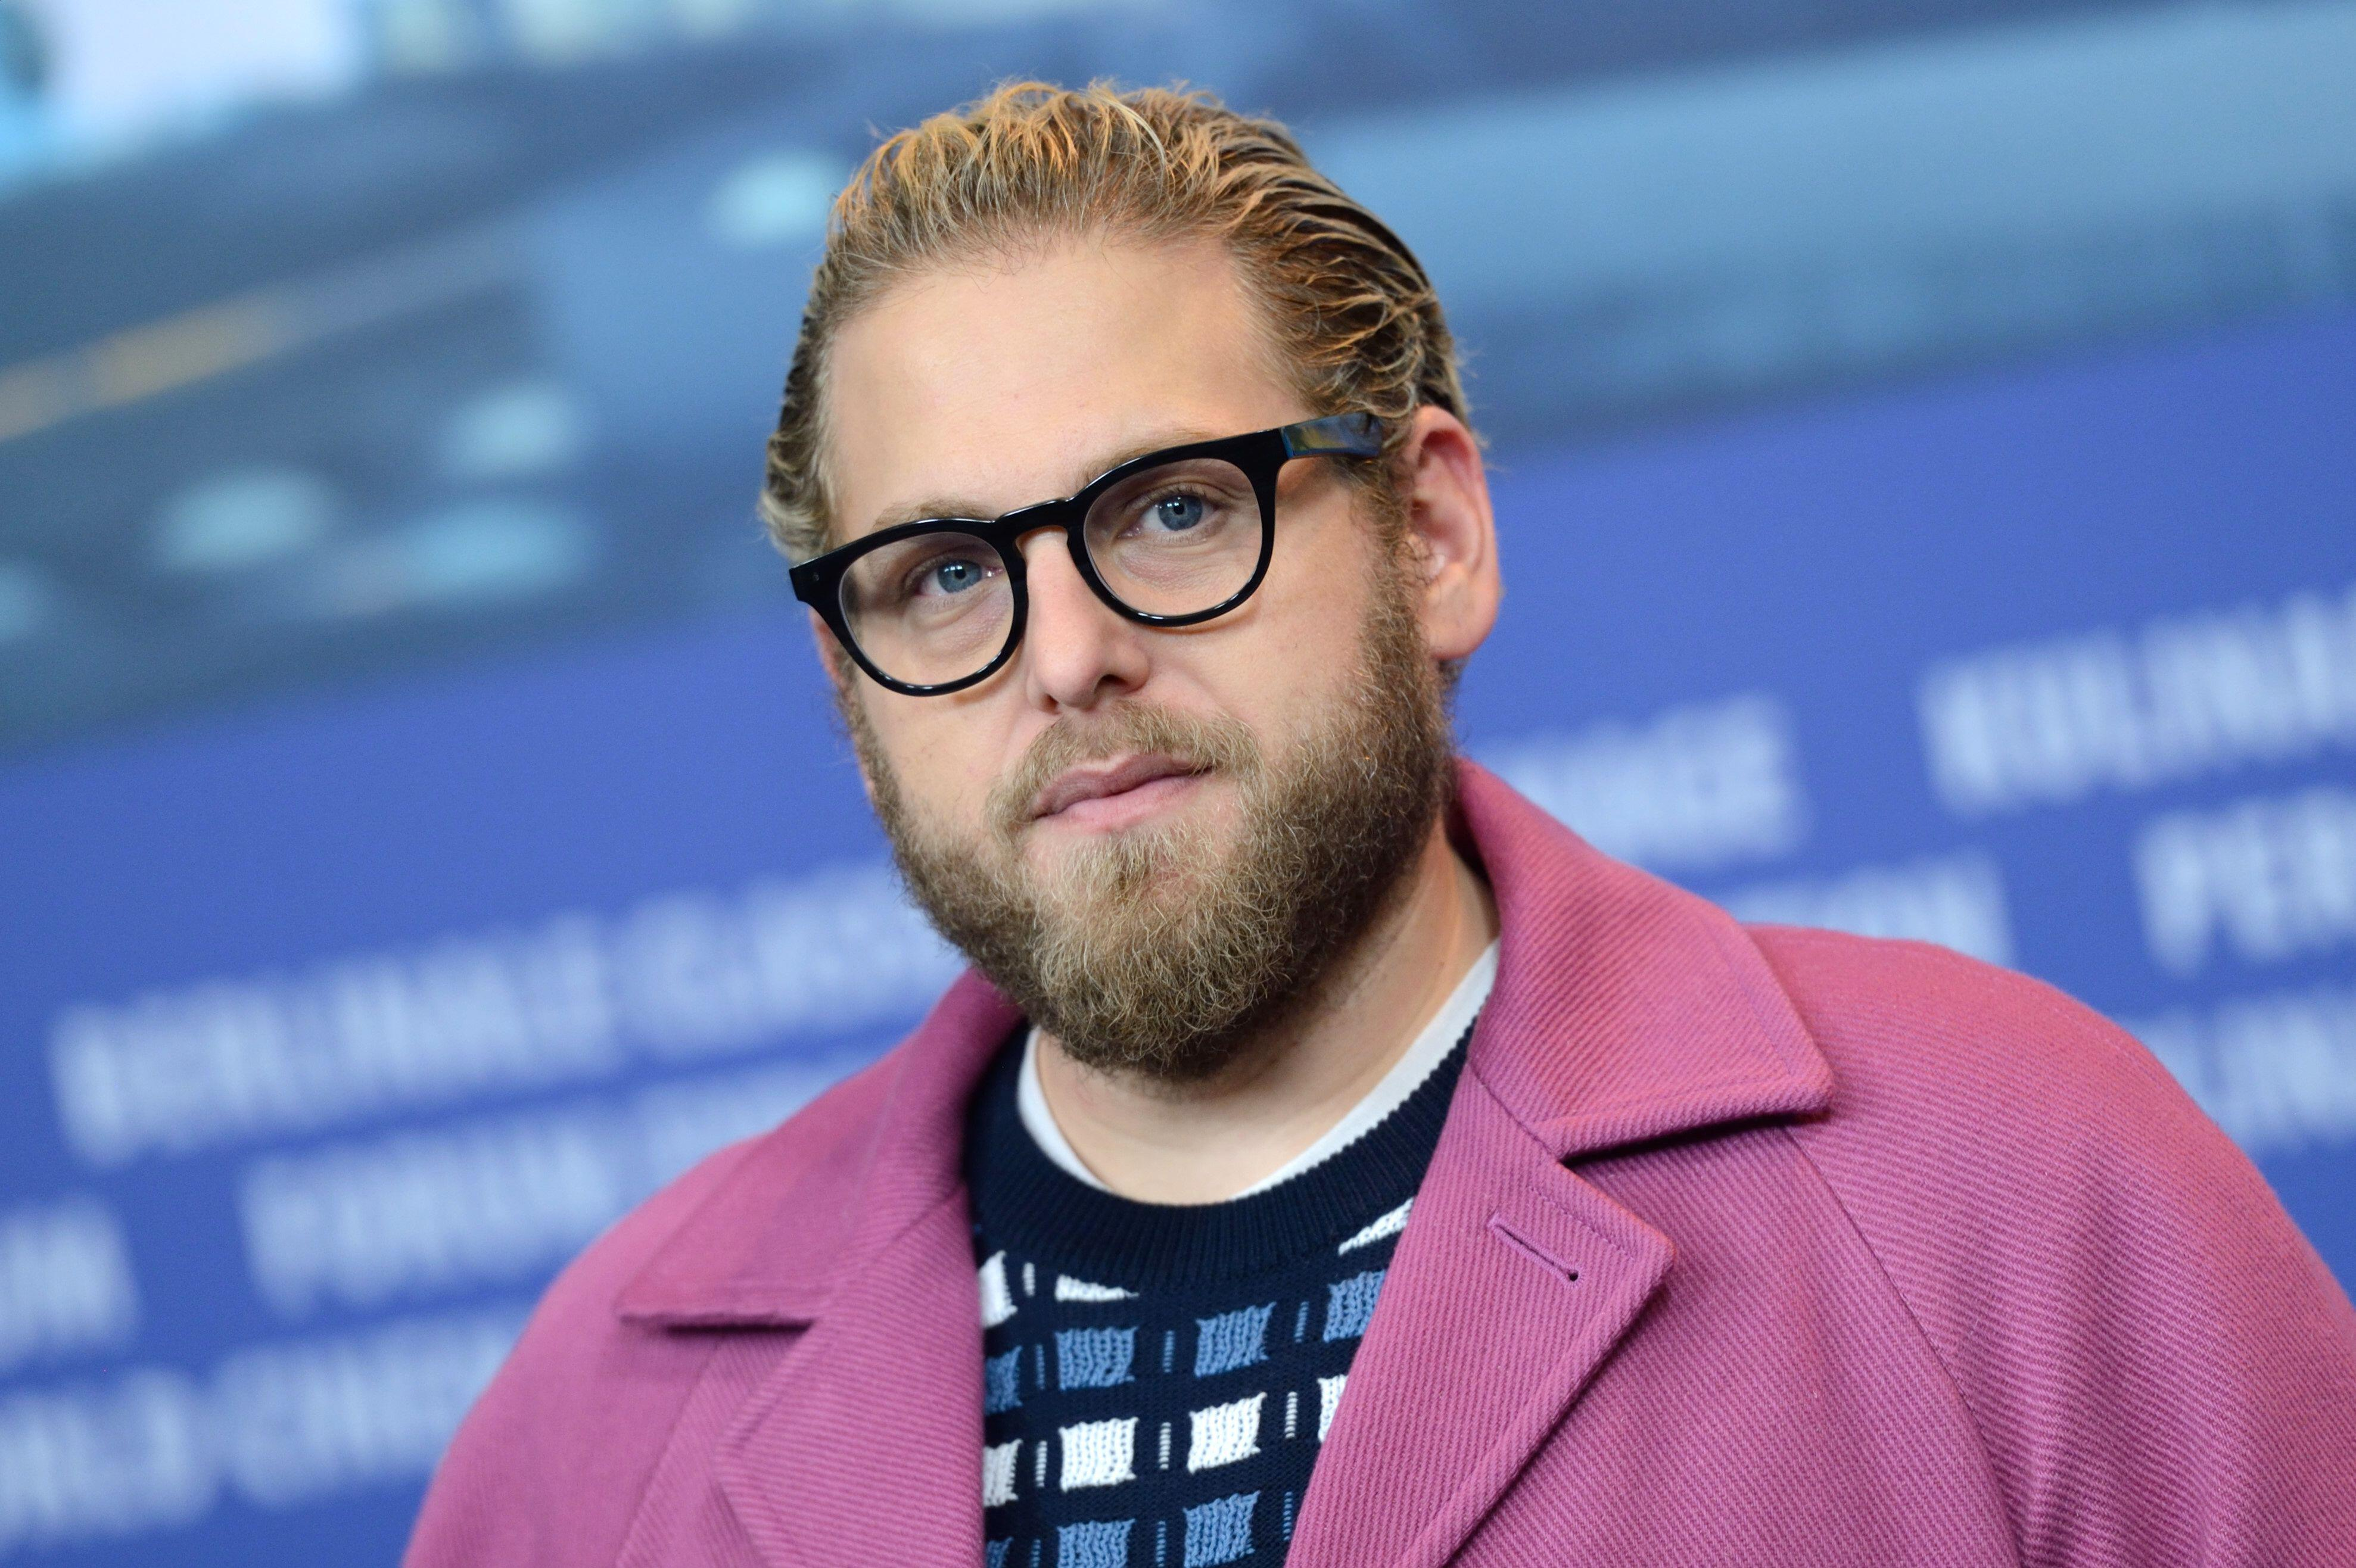 Jonah Hill Body Positivity - Jonah Hill attending the MID90s Press Conference as part of the 69th Berlin International Film Festival (Berlinale) in Berlin, Germany on February 10, 2019. Photo by Aurore Marechal/ABACAPRESS.COM (Alamy)